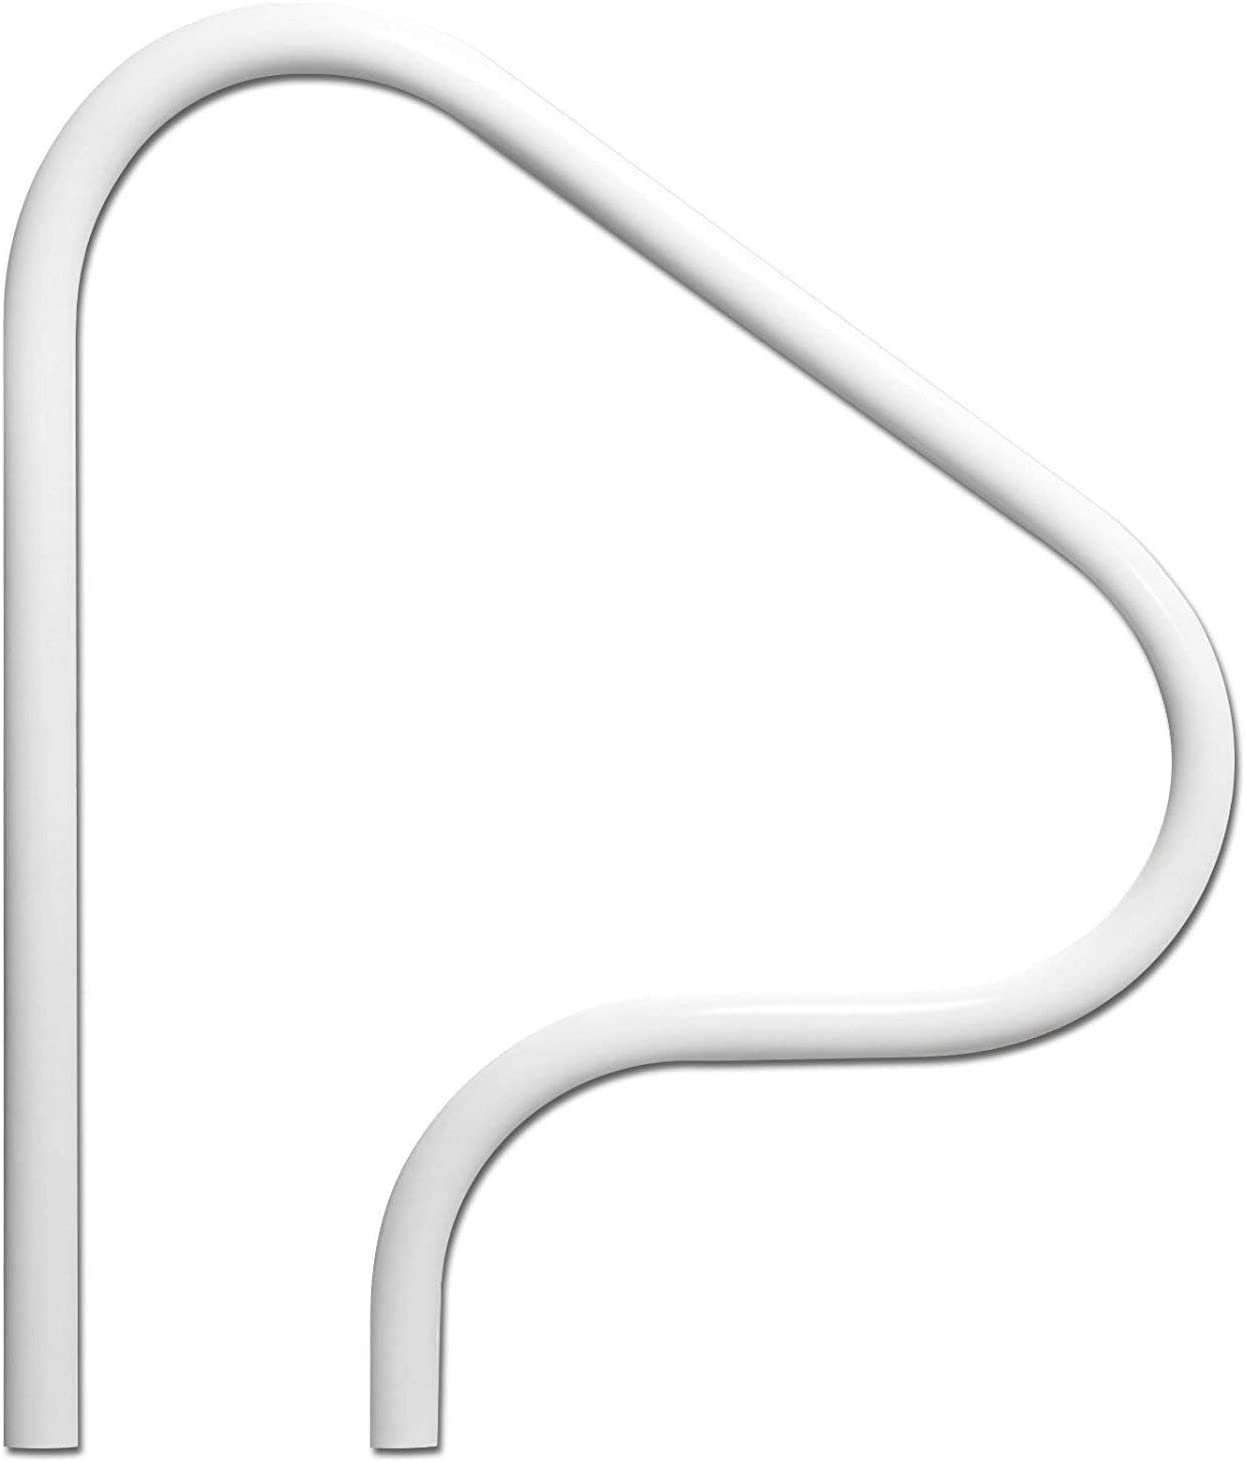 SAFTRON P-326-RTD-W 3 Bend Return to Deck Polymer Swimming Pool Handrail, White